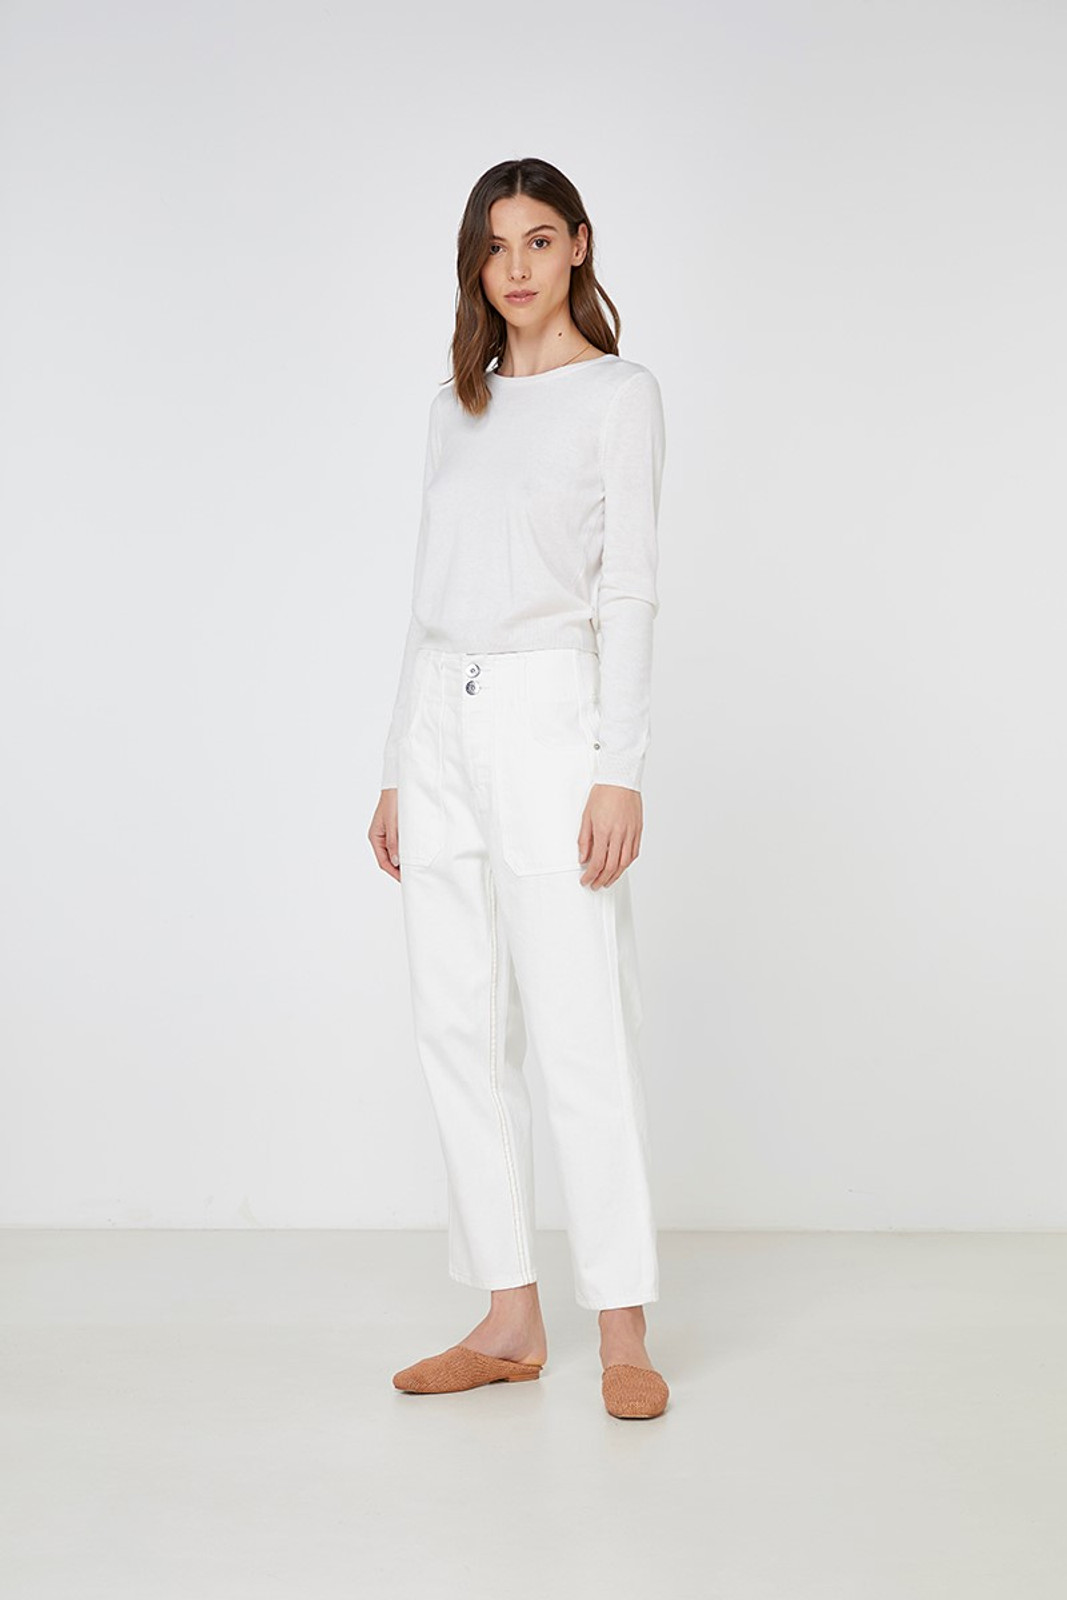 Elka Collective Gale Knit White  0